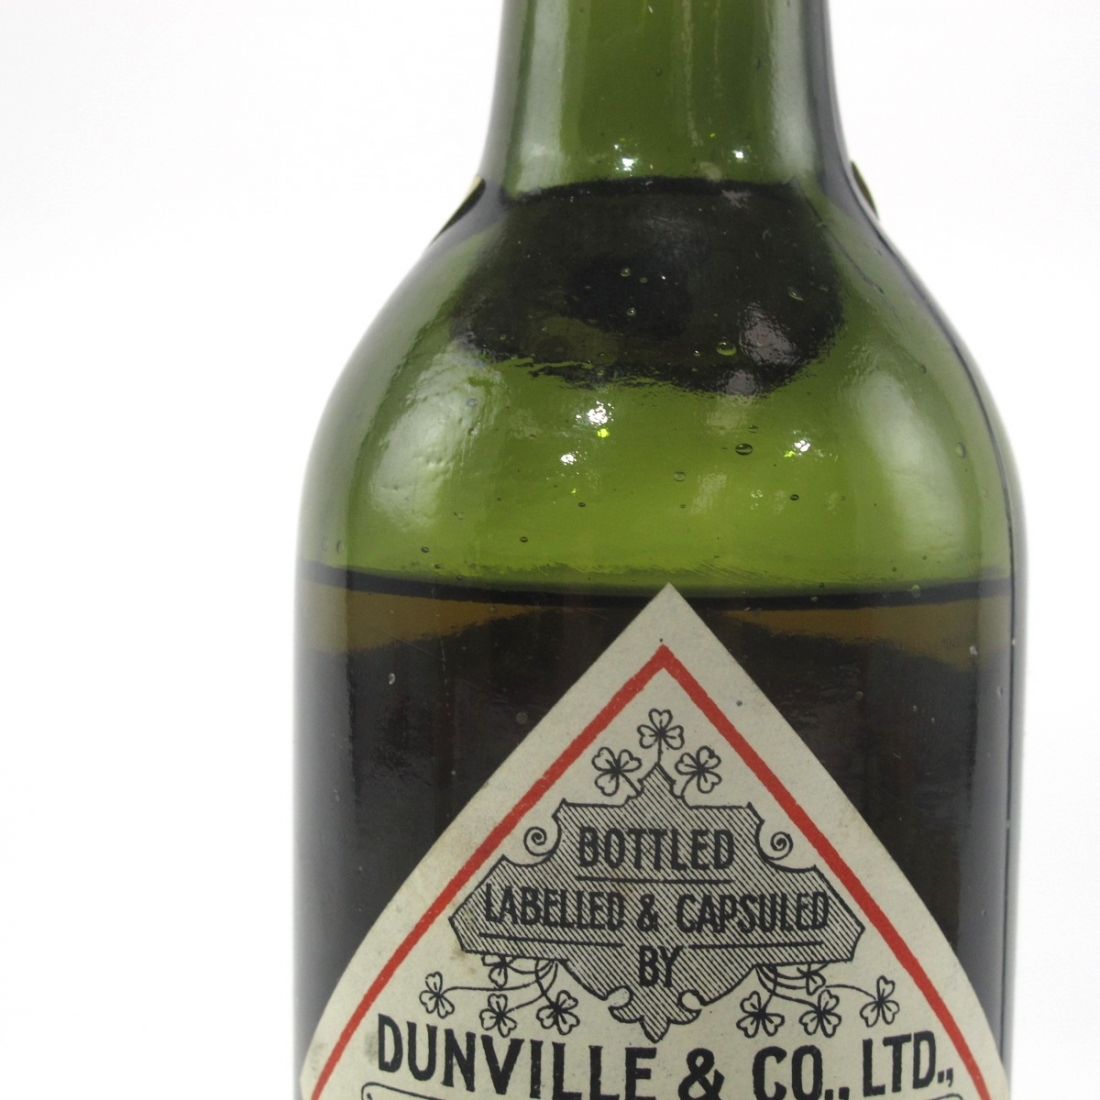 Dunville's VR Old Irish Whisky Early 20th Century